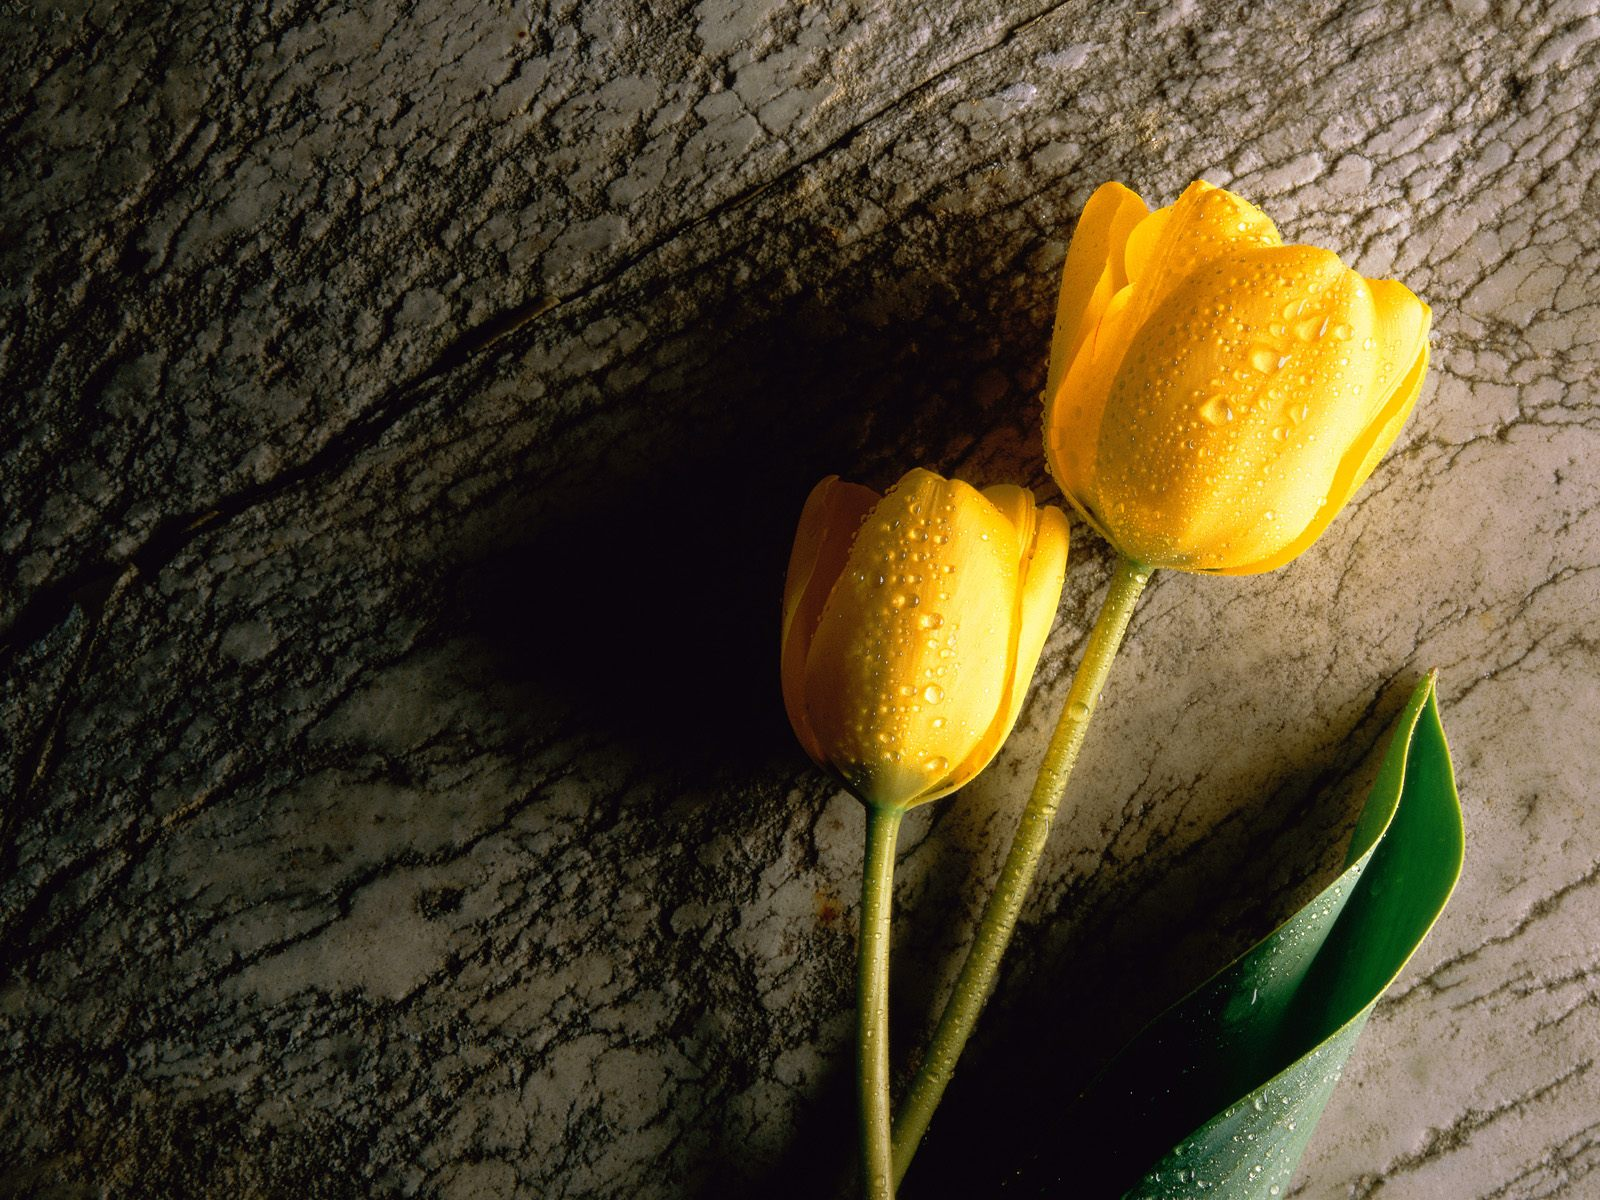 Yellow Tulip 399.38 Kb